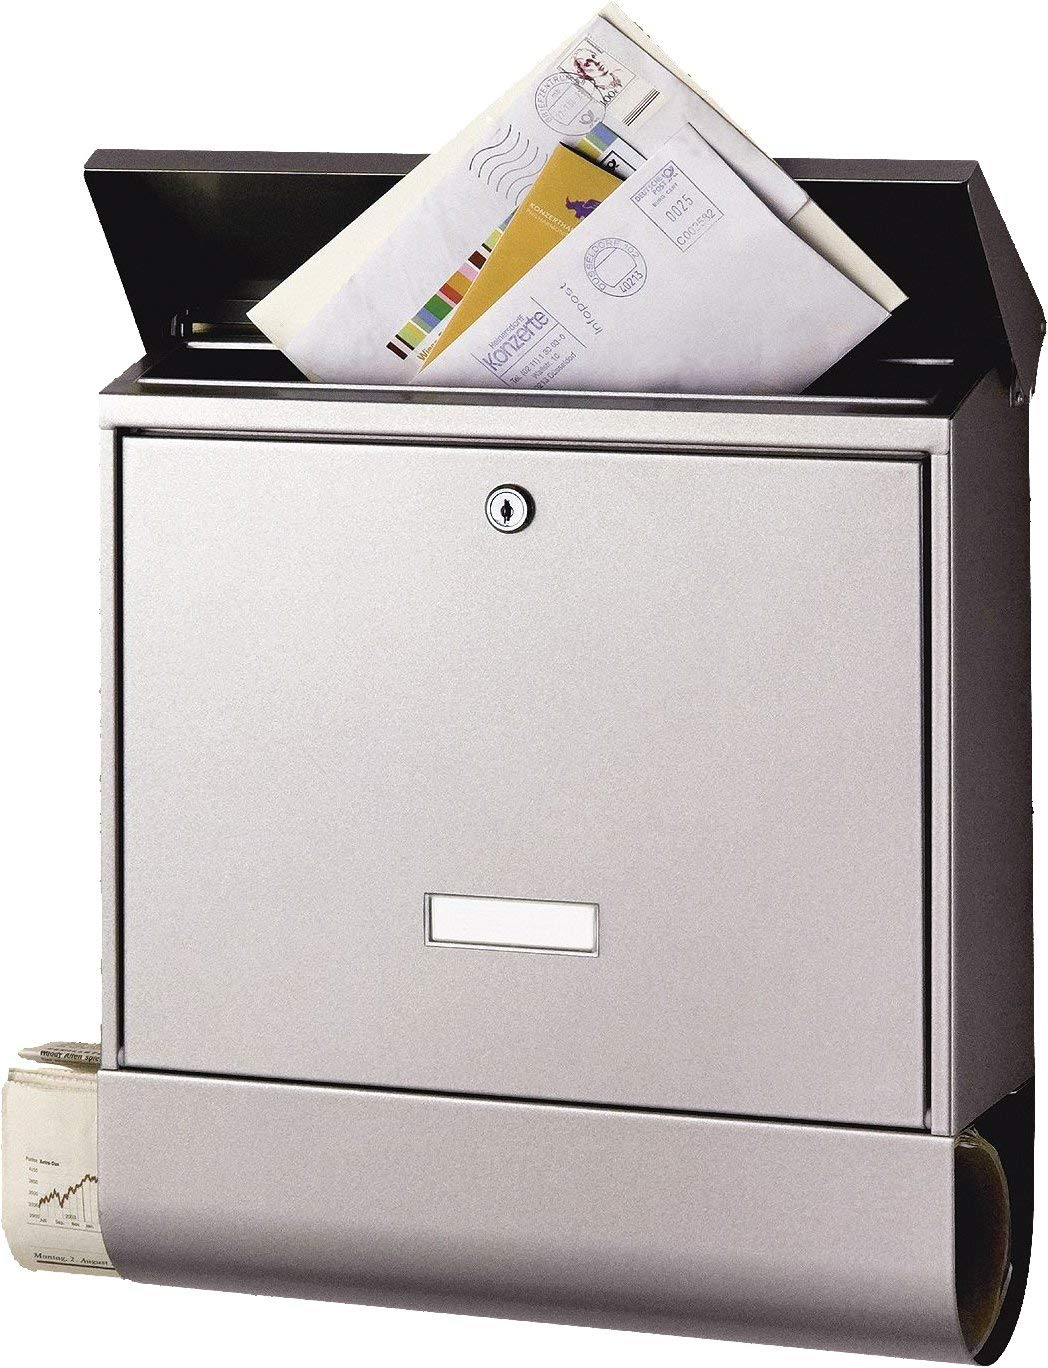 Burg-WÄCHTER letterbox with Newspaper Compartment and Name Badge, A4 Slot Size, EU Standard EN 13724, 2 Keys Included, Stainless Steel, Seculine 2500 Ni